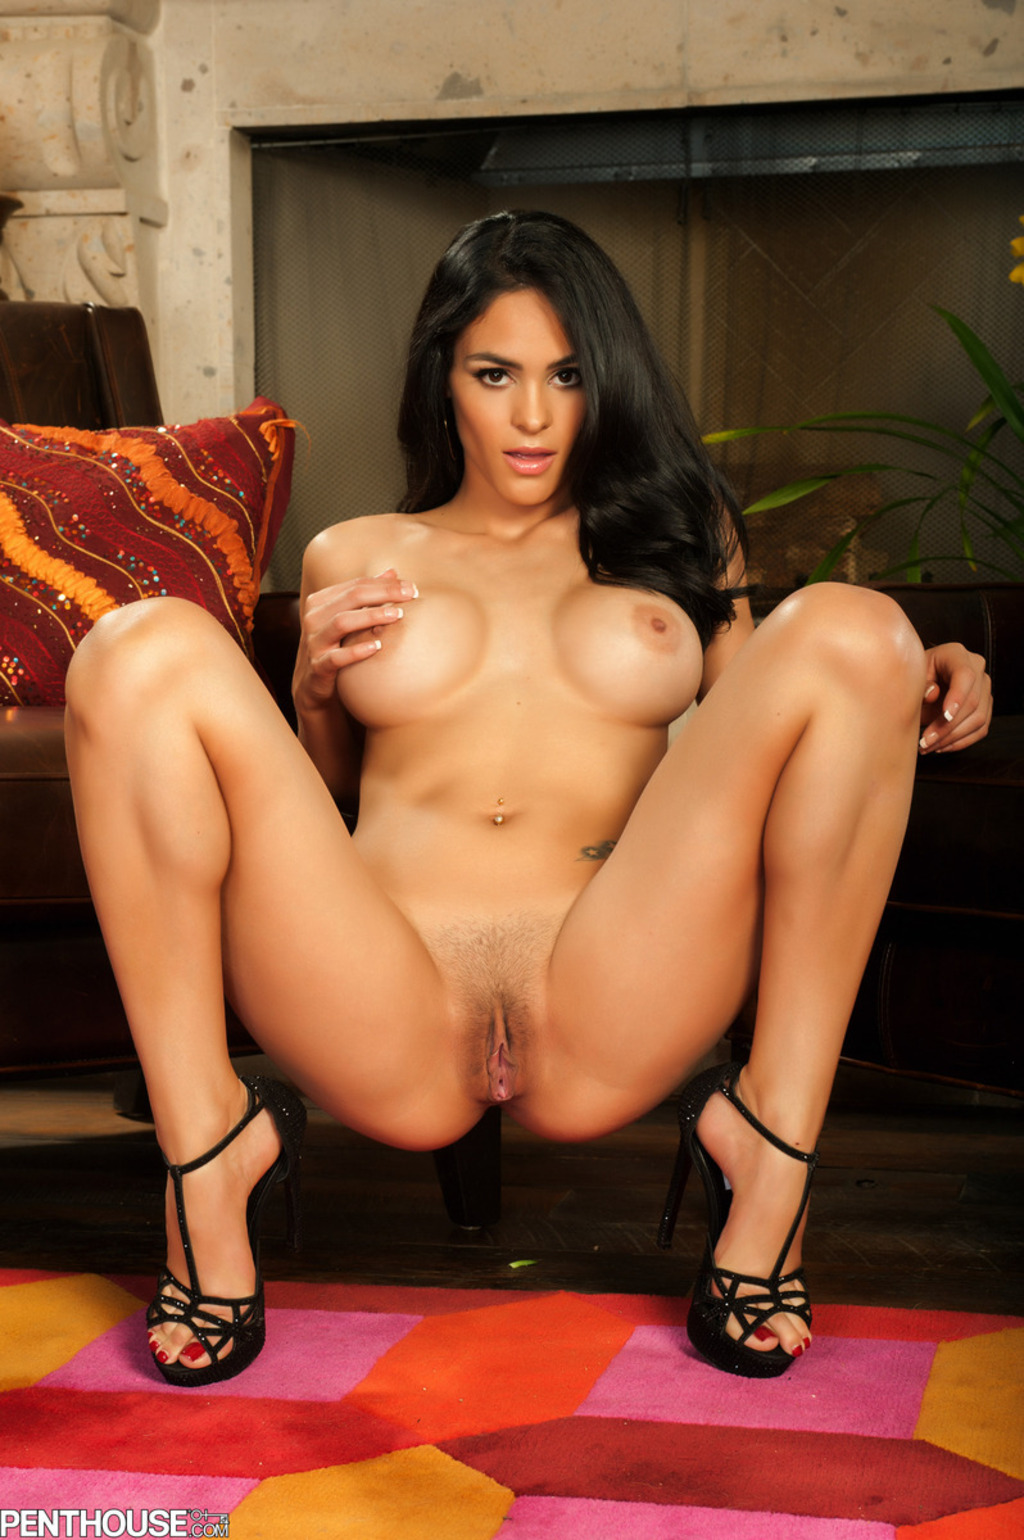 Jasmine Caro Biography Free Images Pictures Milf Porn Stars Images Free Pornstars Biography